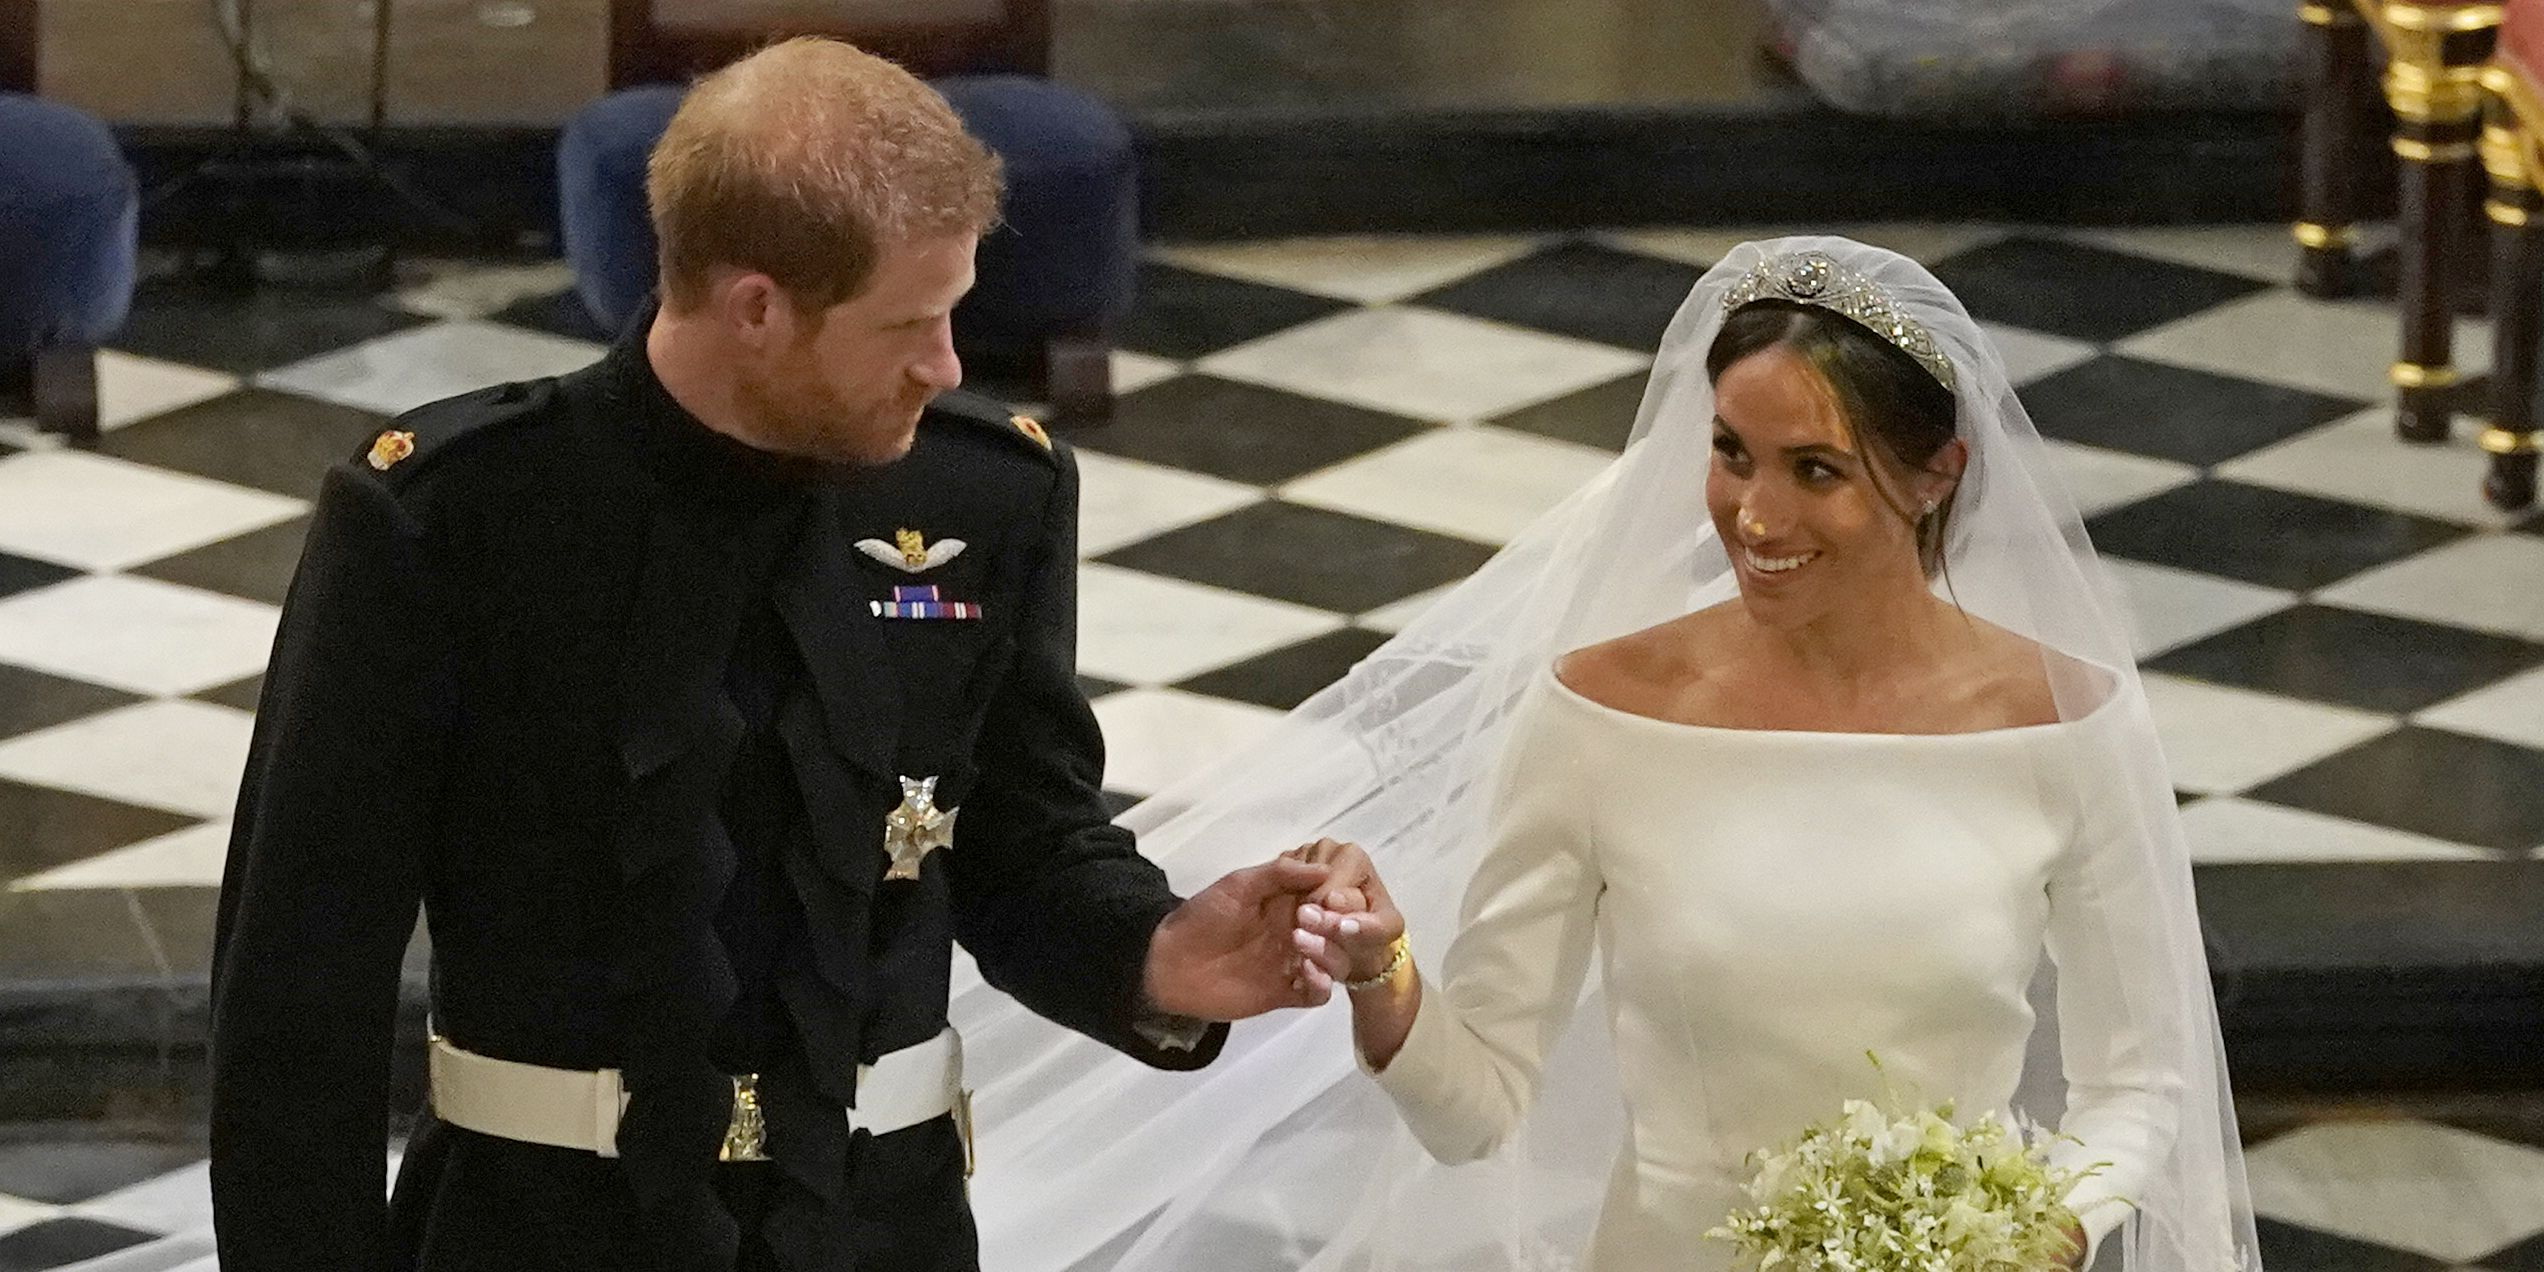 Meghan Markle's wedding bouquet of flowers